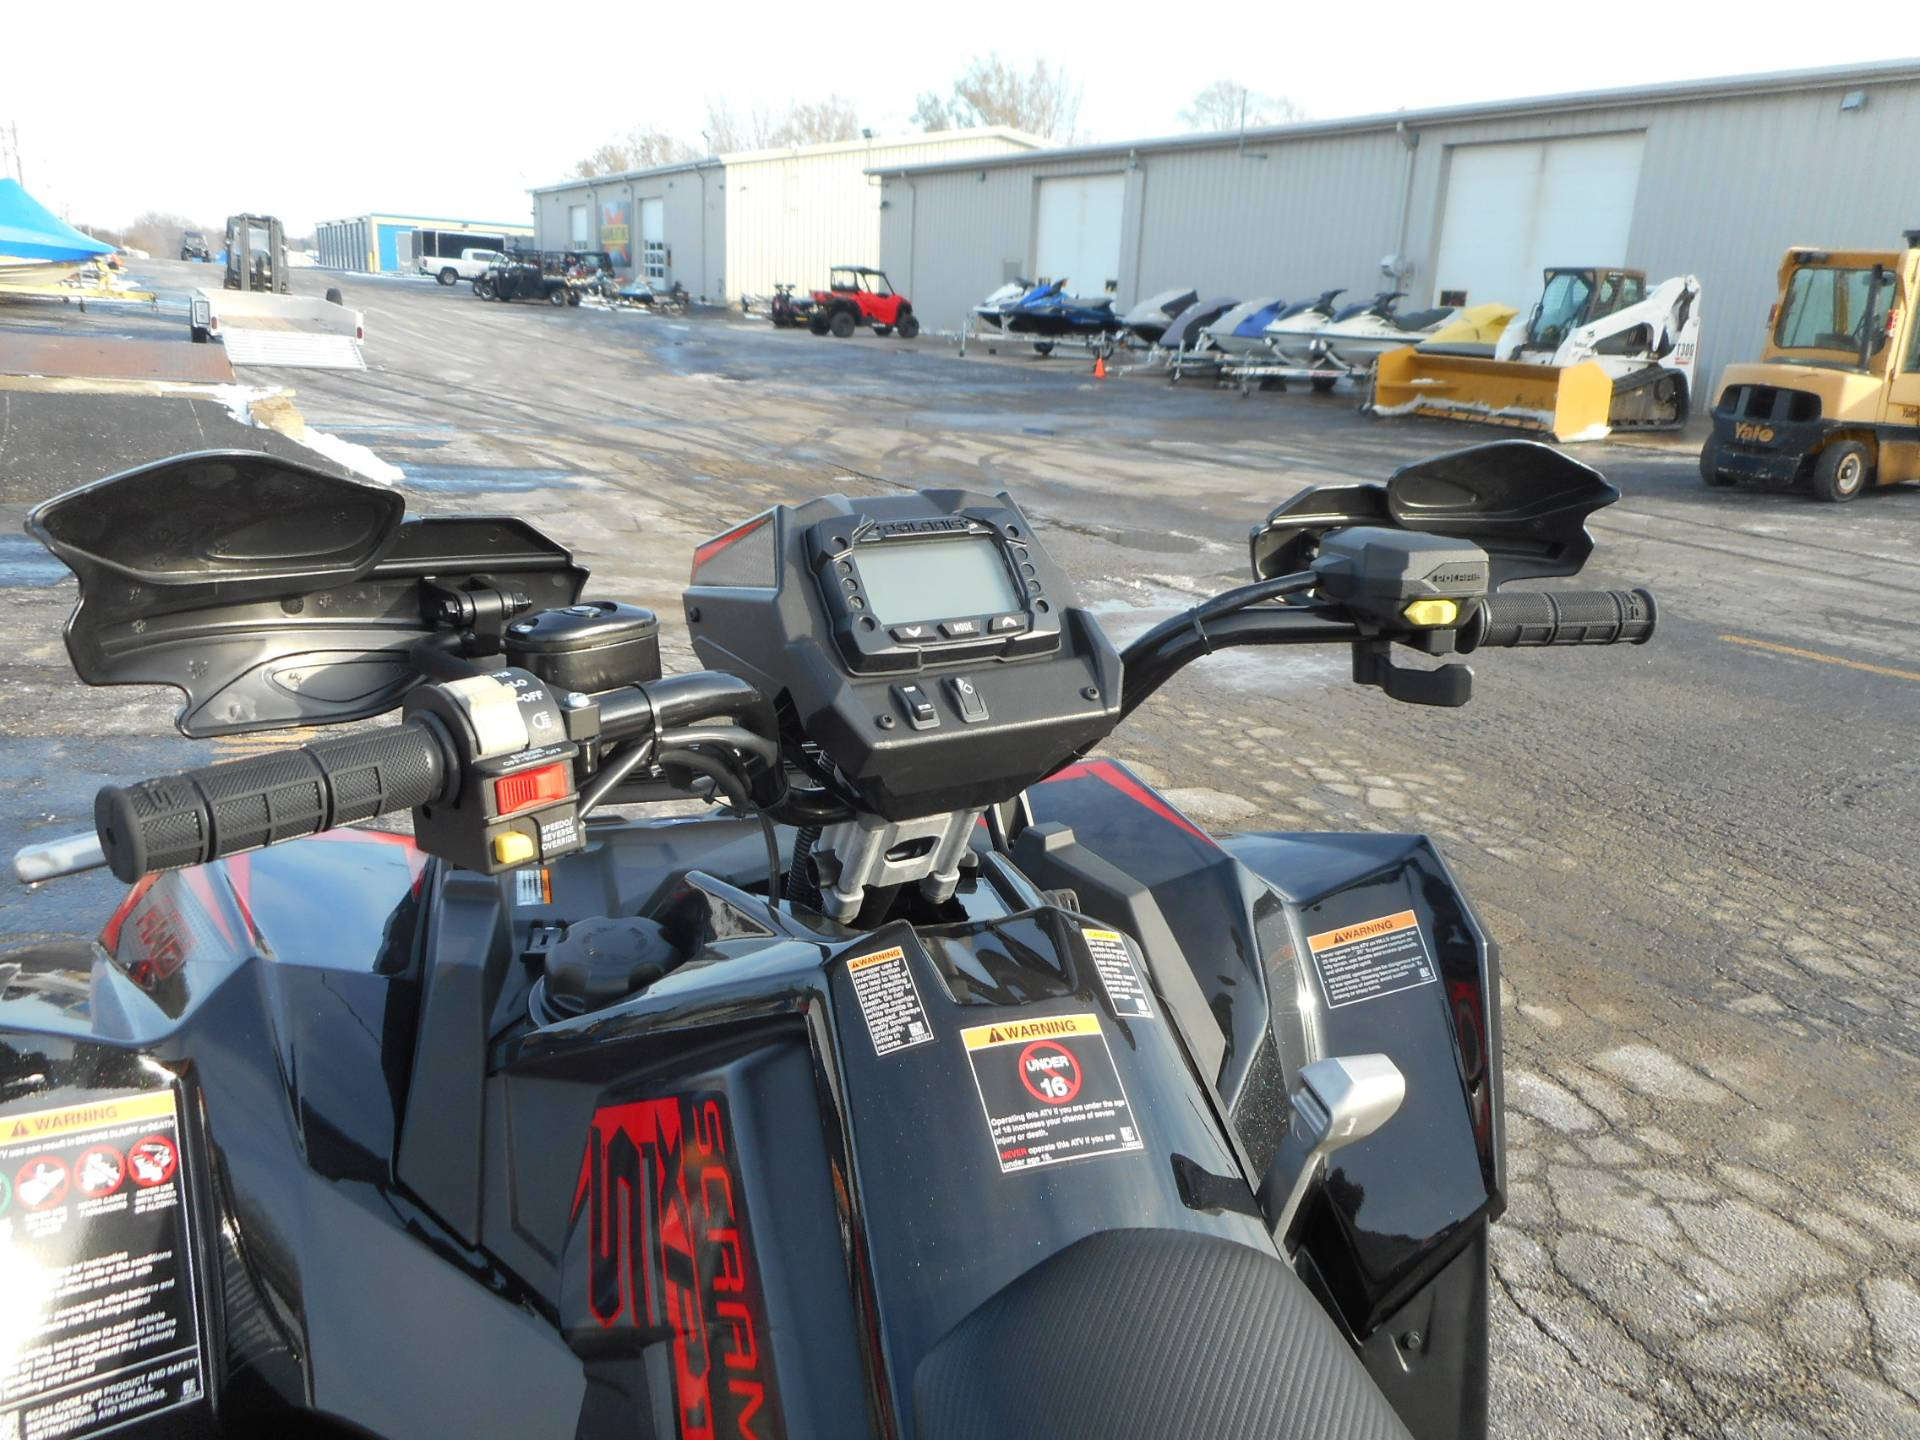 2020 Polaris Scrambler XP 1000 S in Belvidere, Illinois - Photo 7